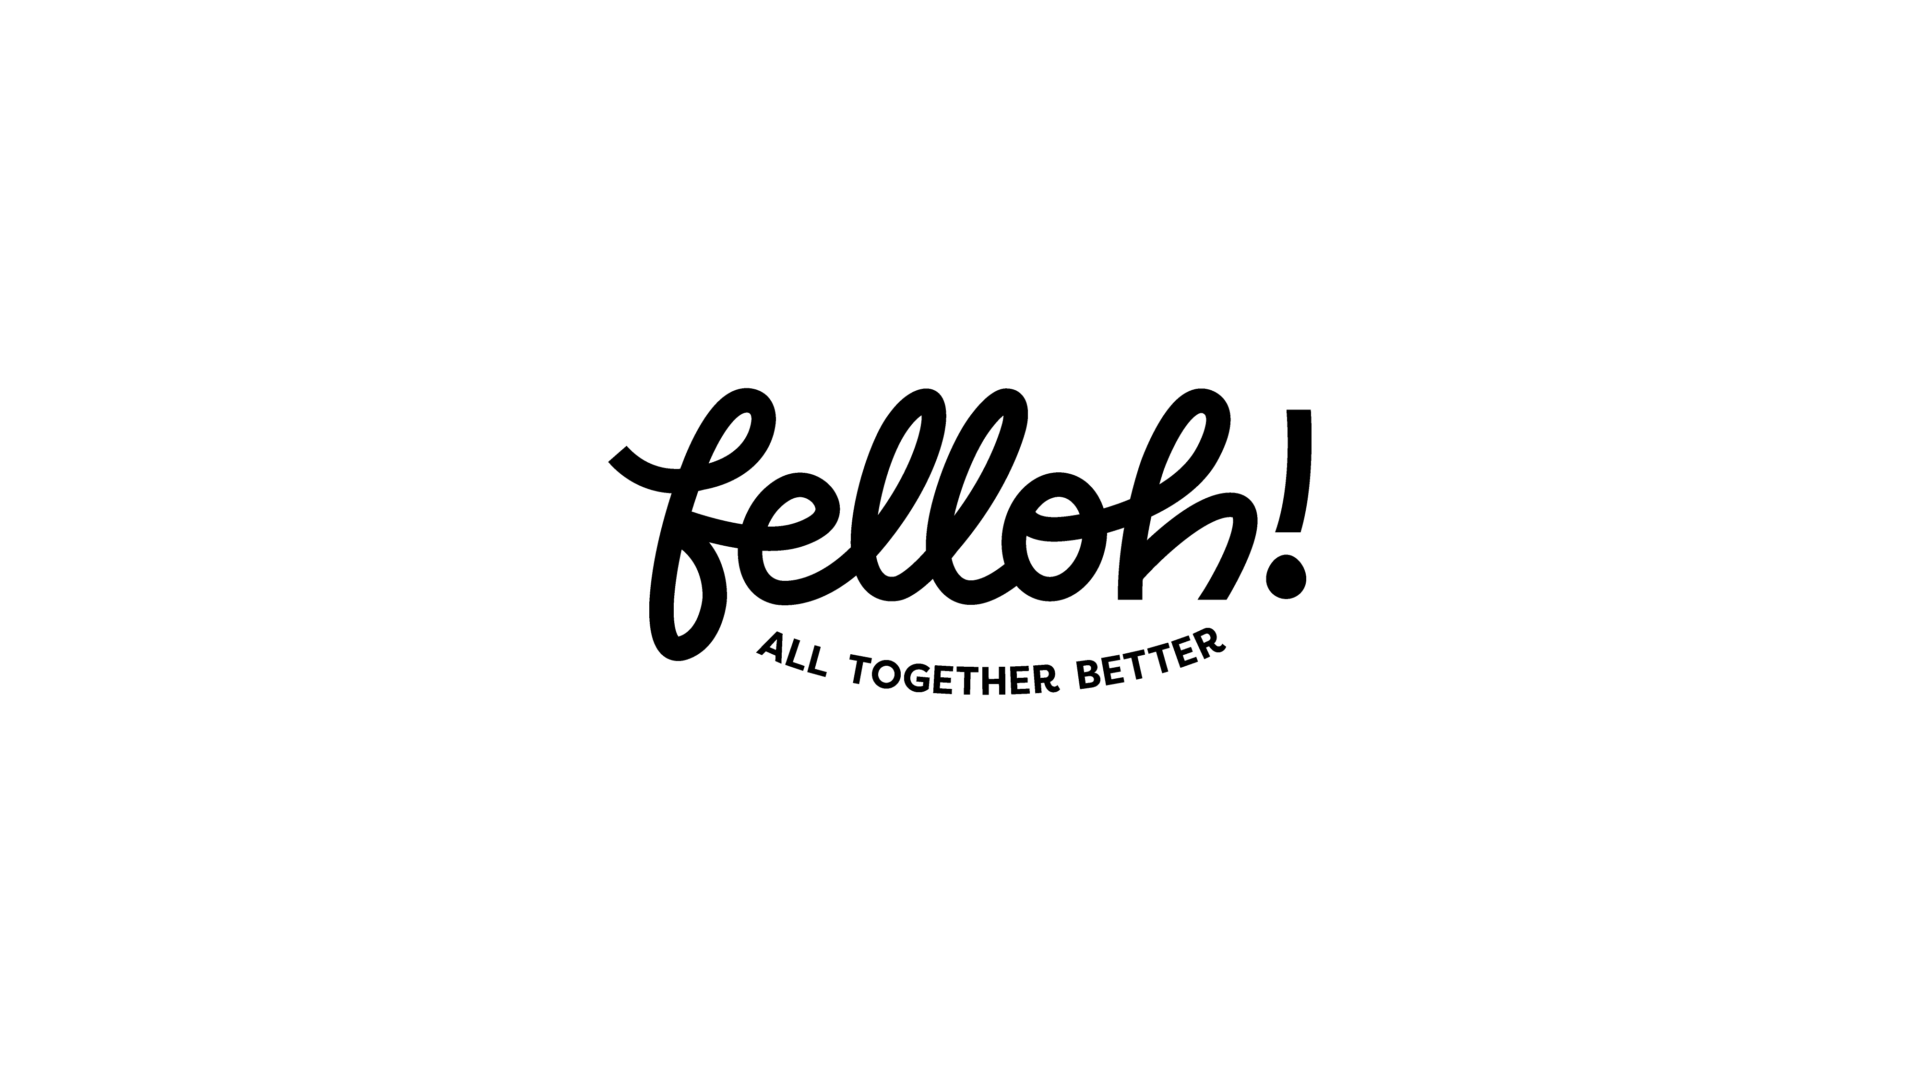 felloh_unused_logo_concept